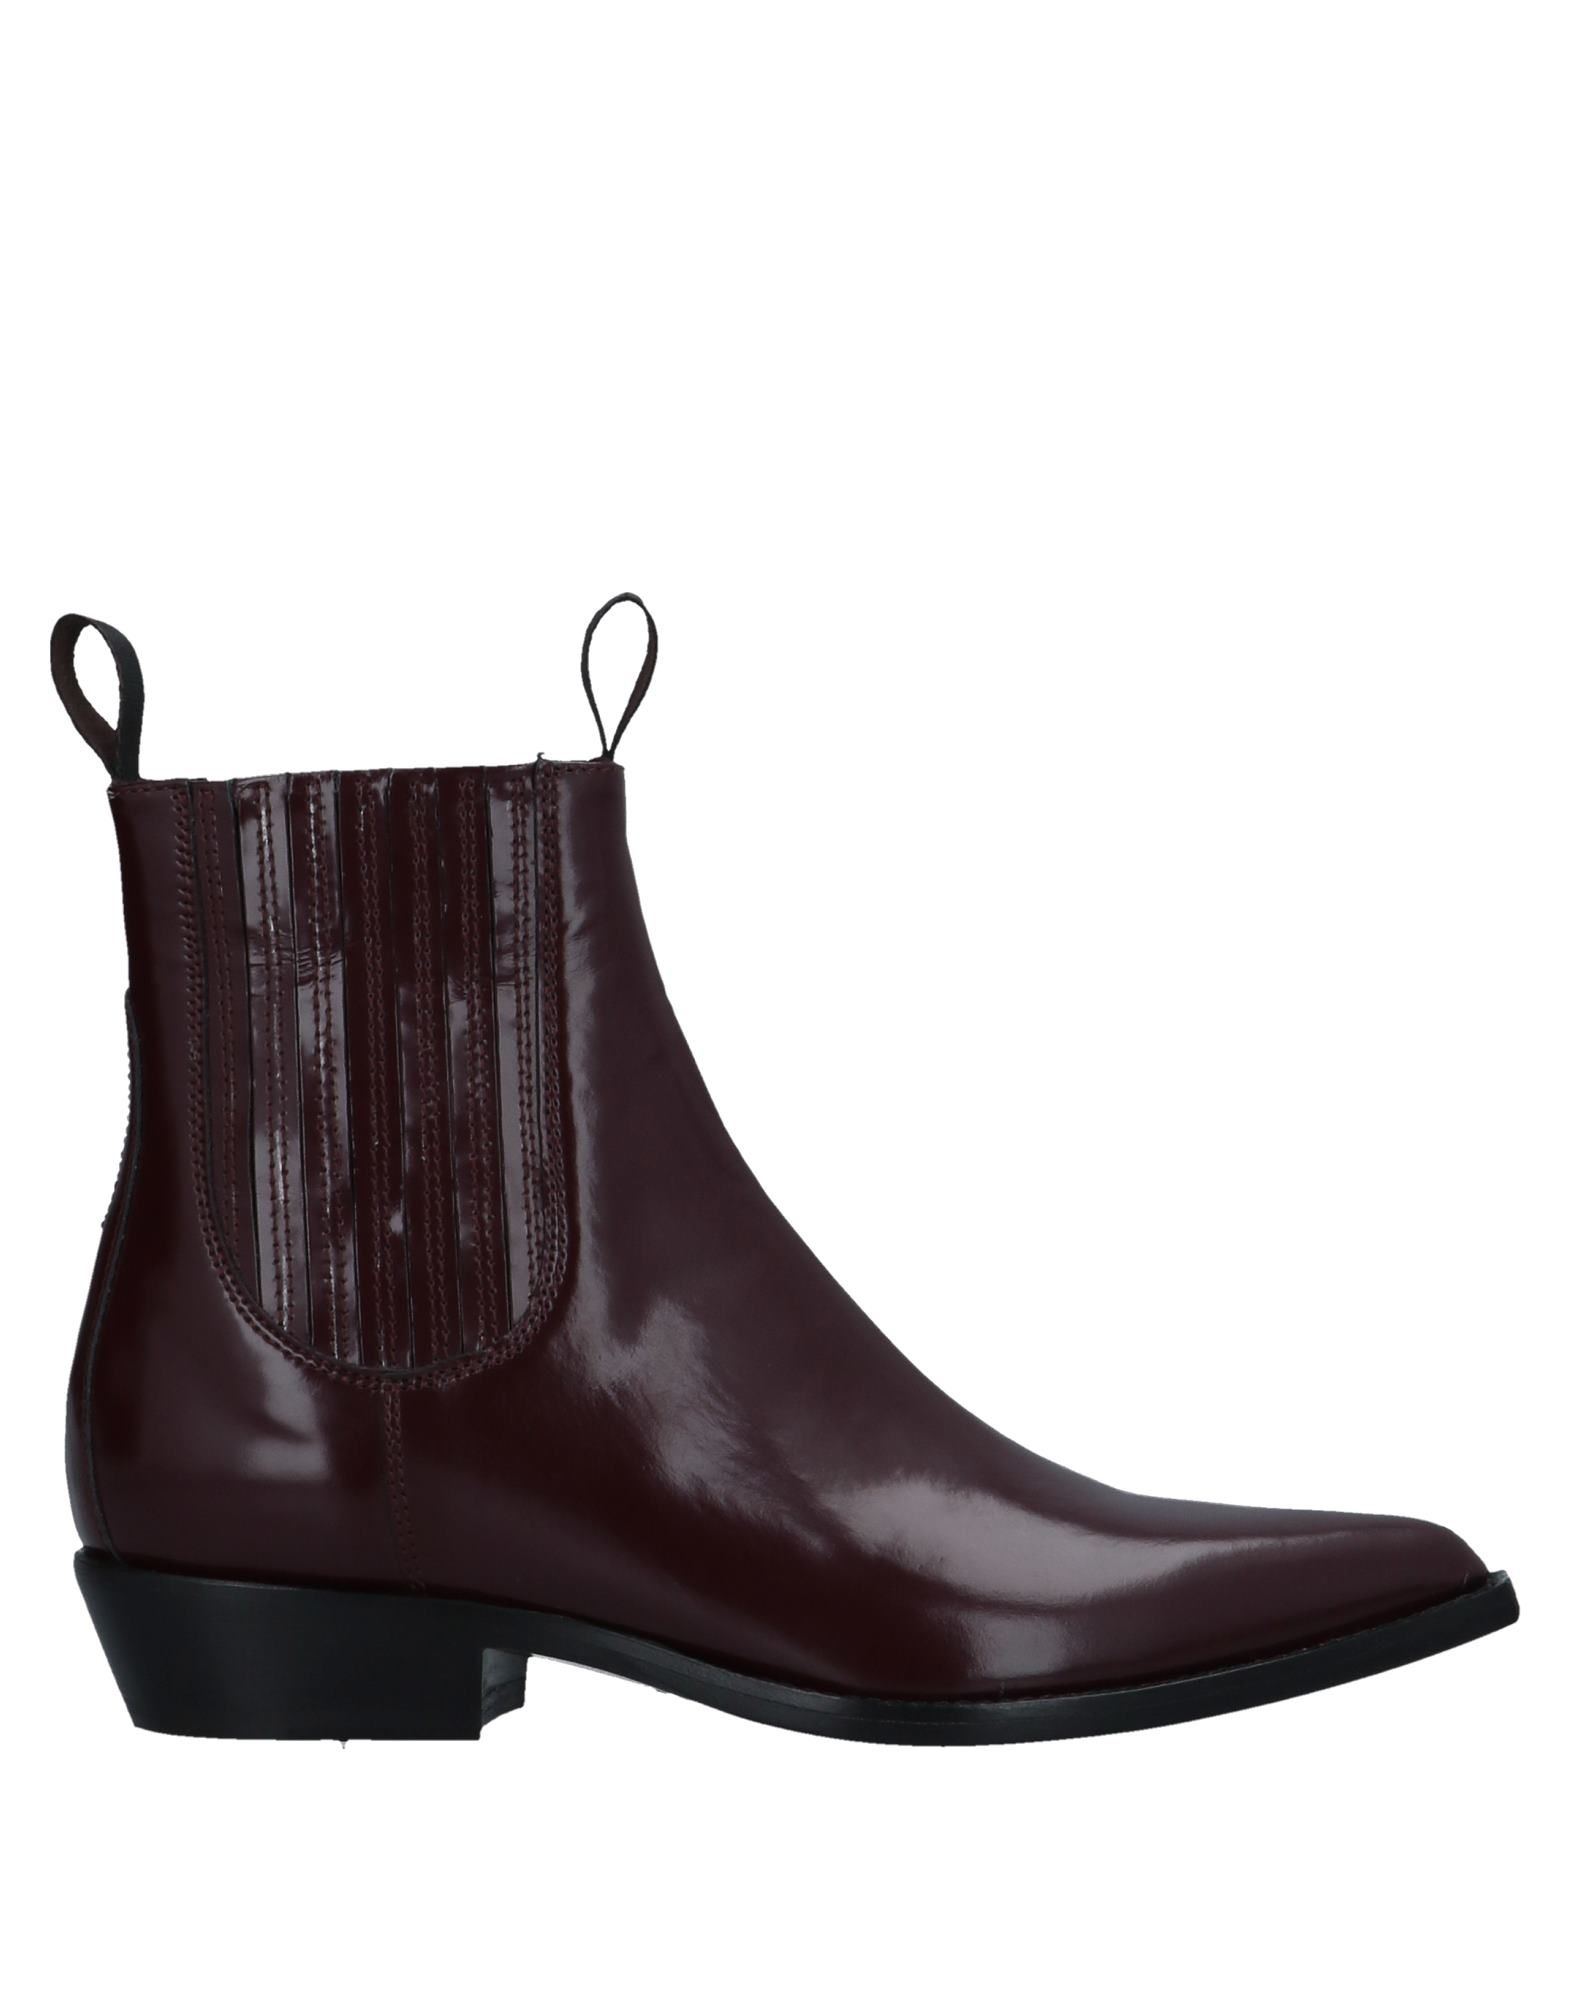 SONORA Ankle Boots in Maroon